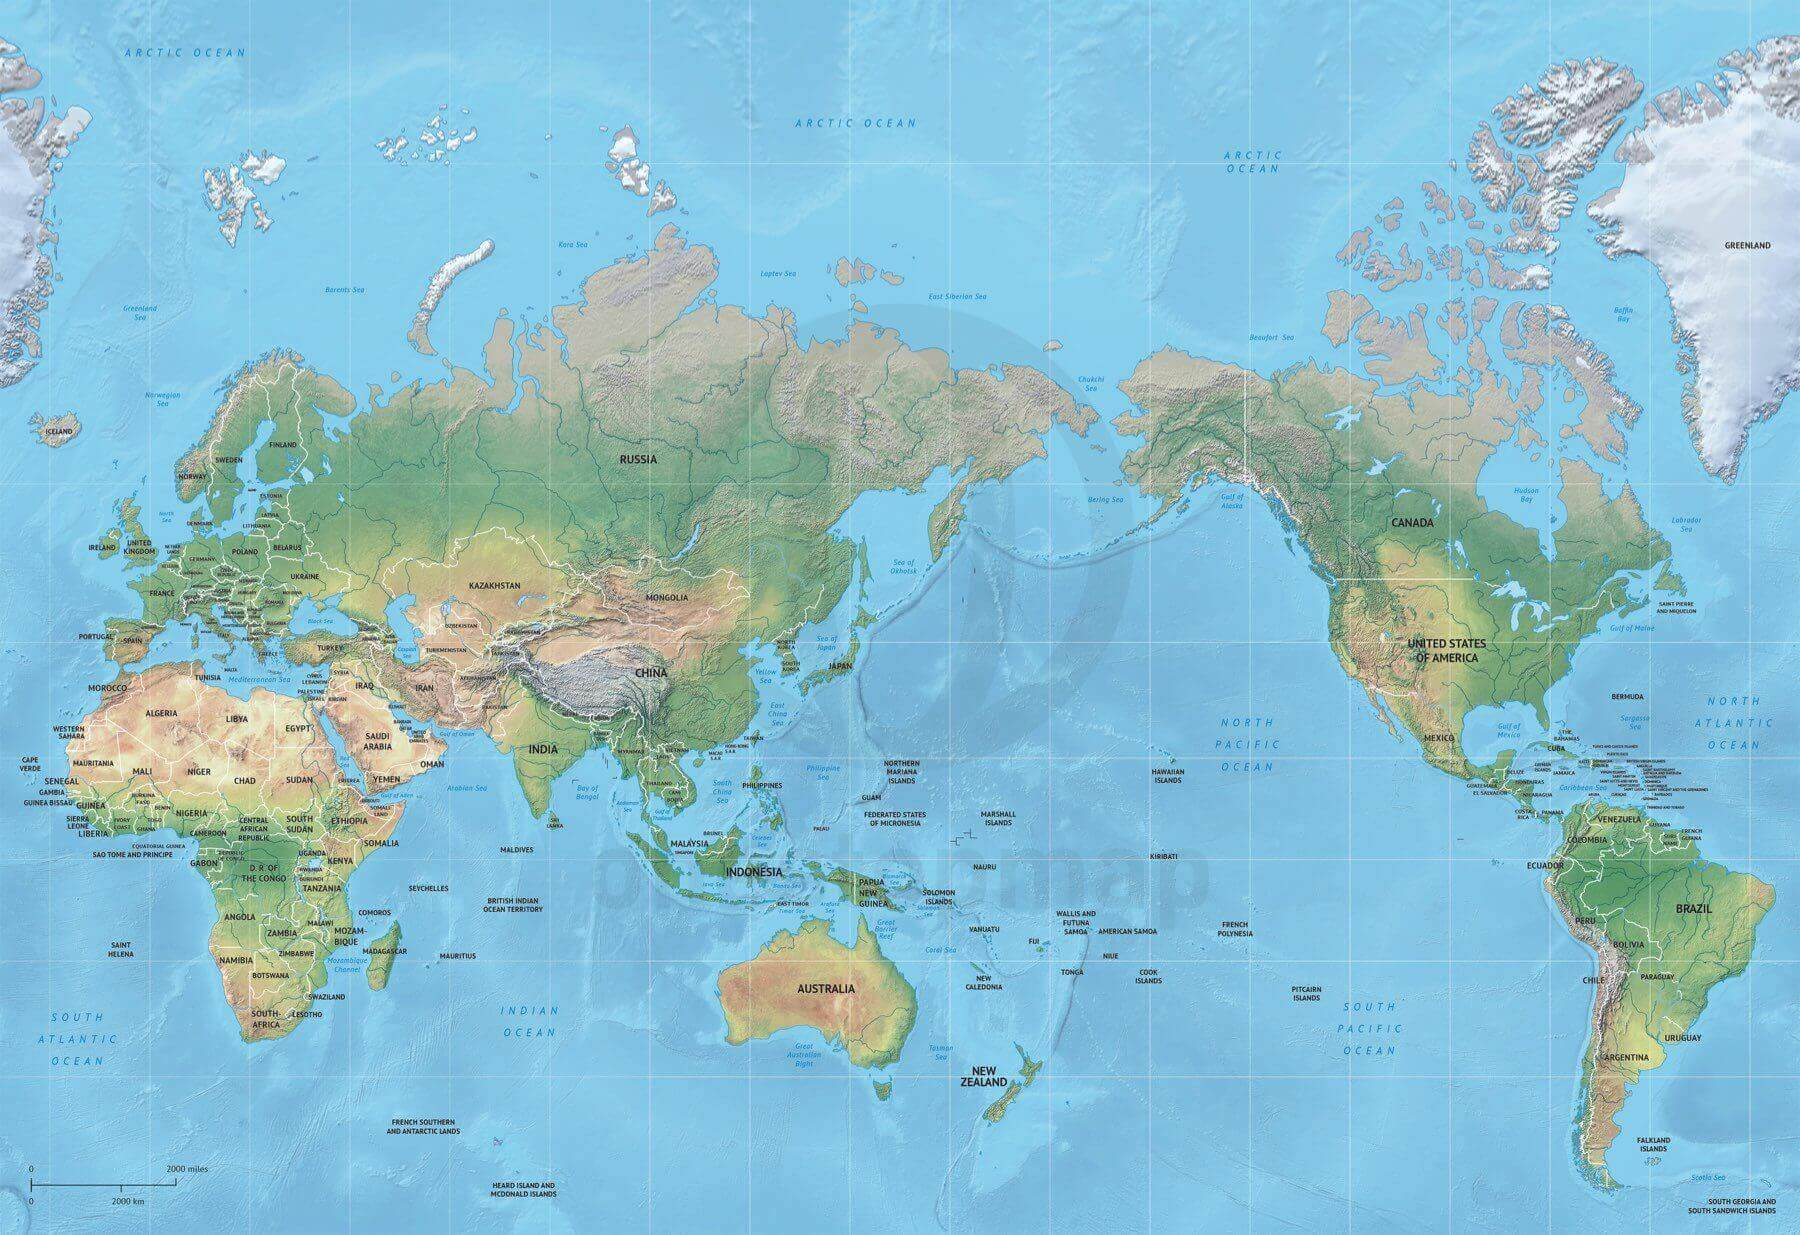 Vector map world relief mercator asia australia one stop map 222 world political shaded relief mercator asia australia gumiabroncs